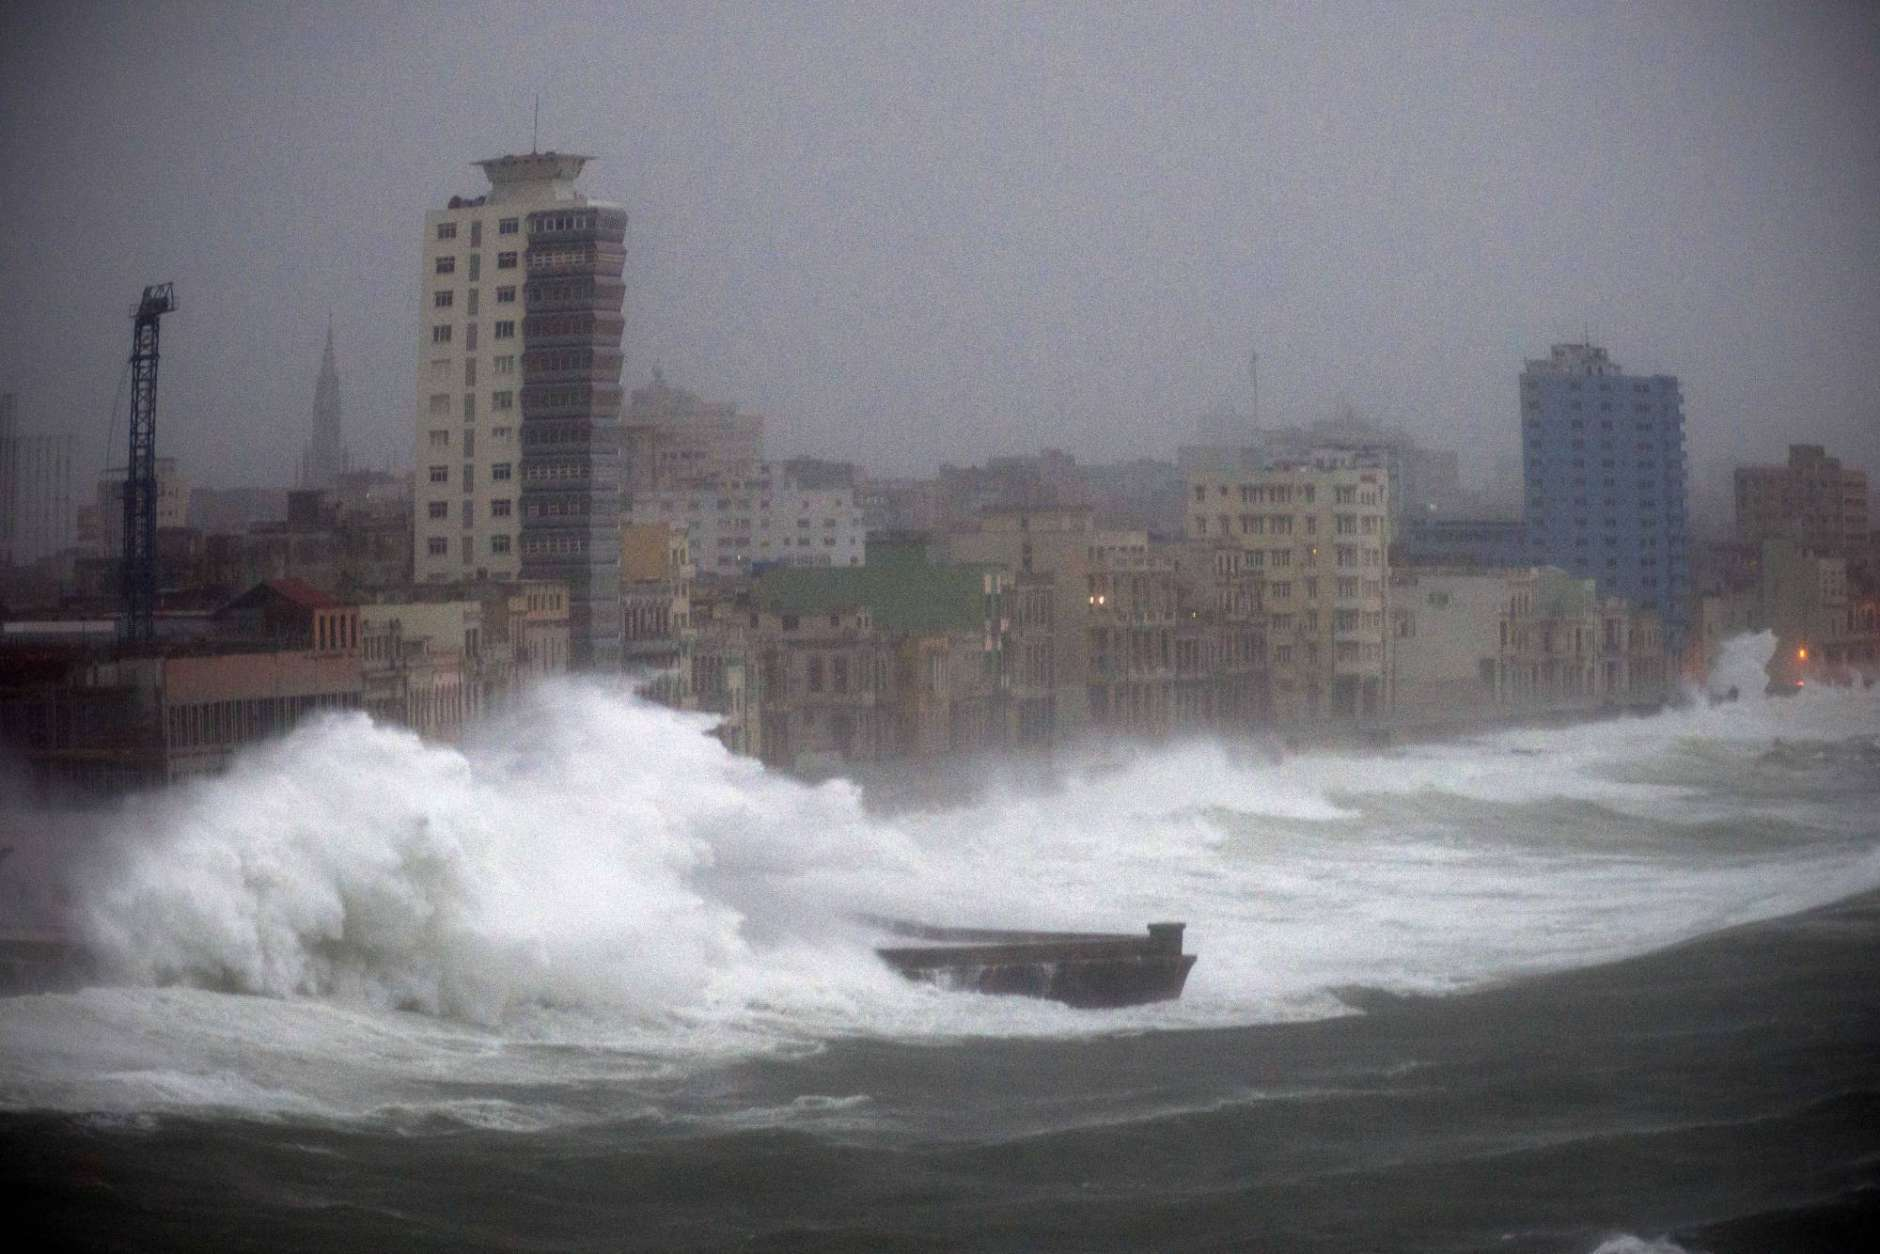 Strong waves brought by Hurricane Irma hit the Malecon seawall in Havana, Cuba, late Saturday, Sept. 9, 2017. (AP Photo/Ramon Espinosa)